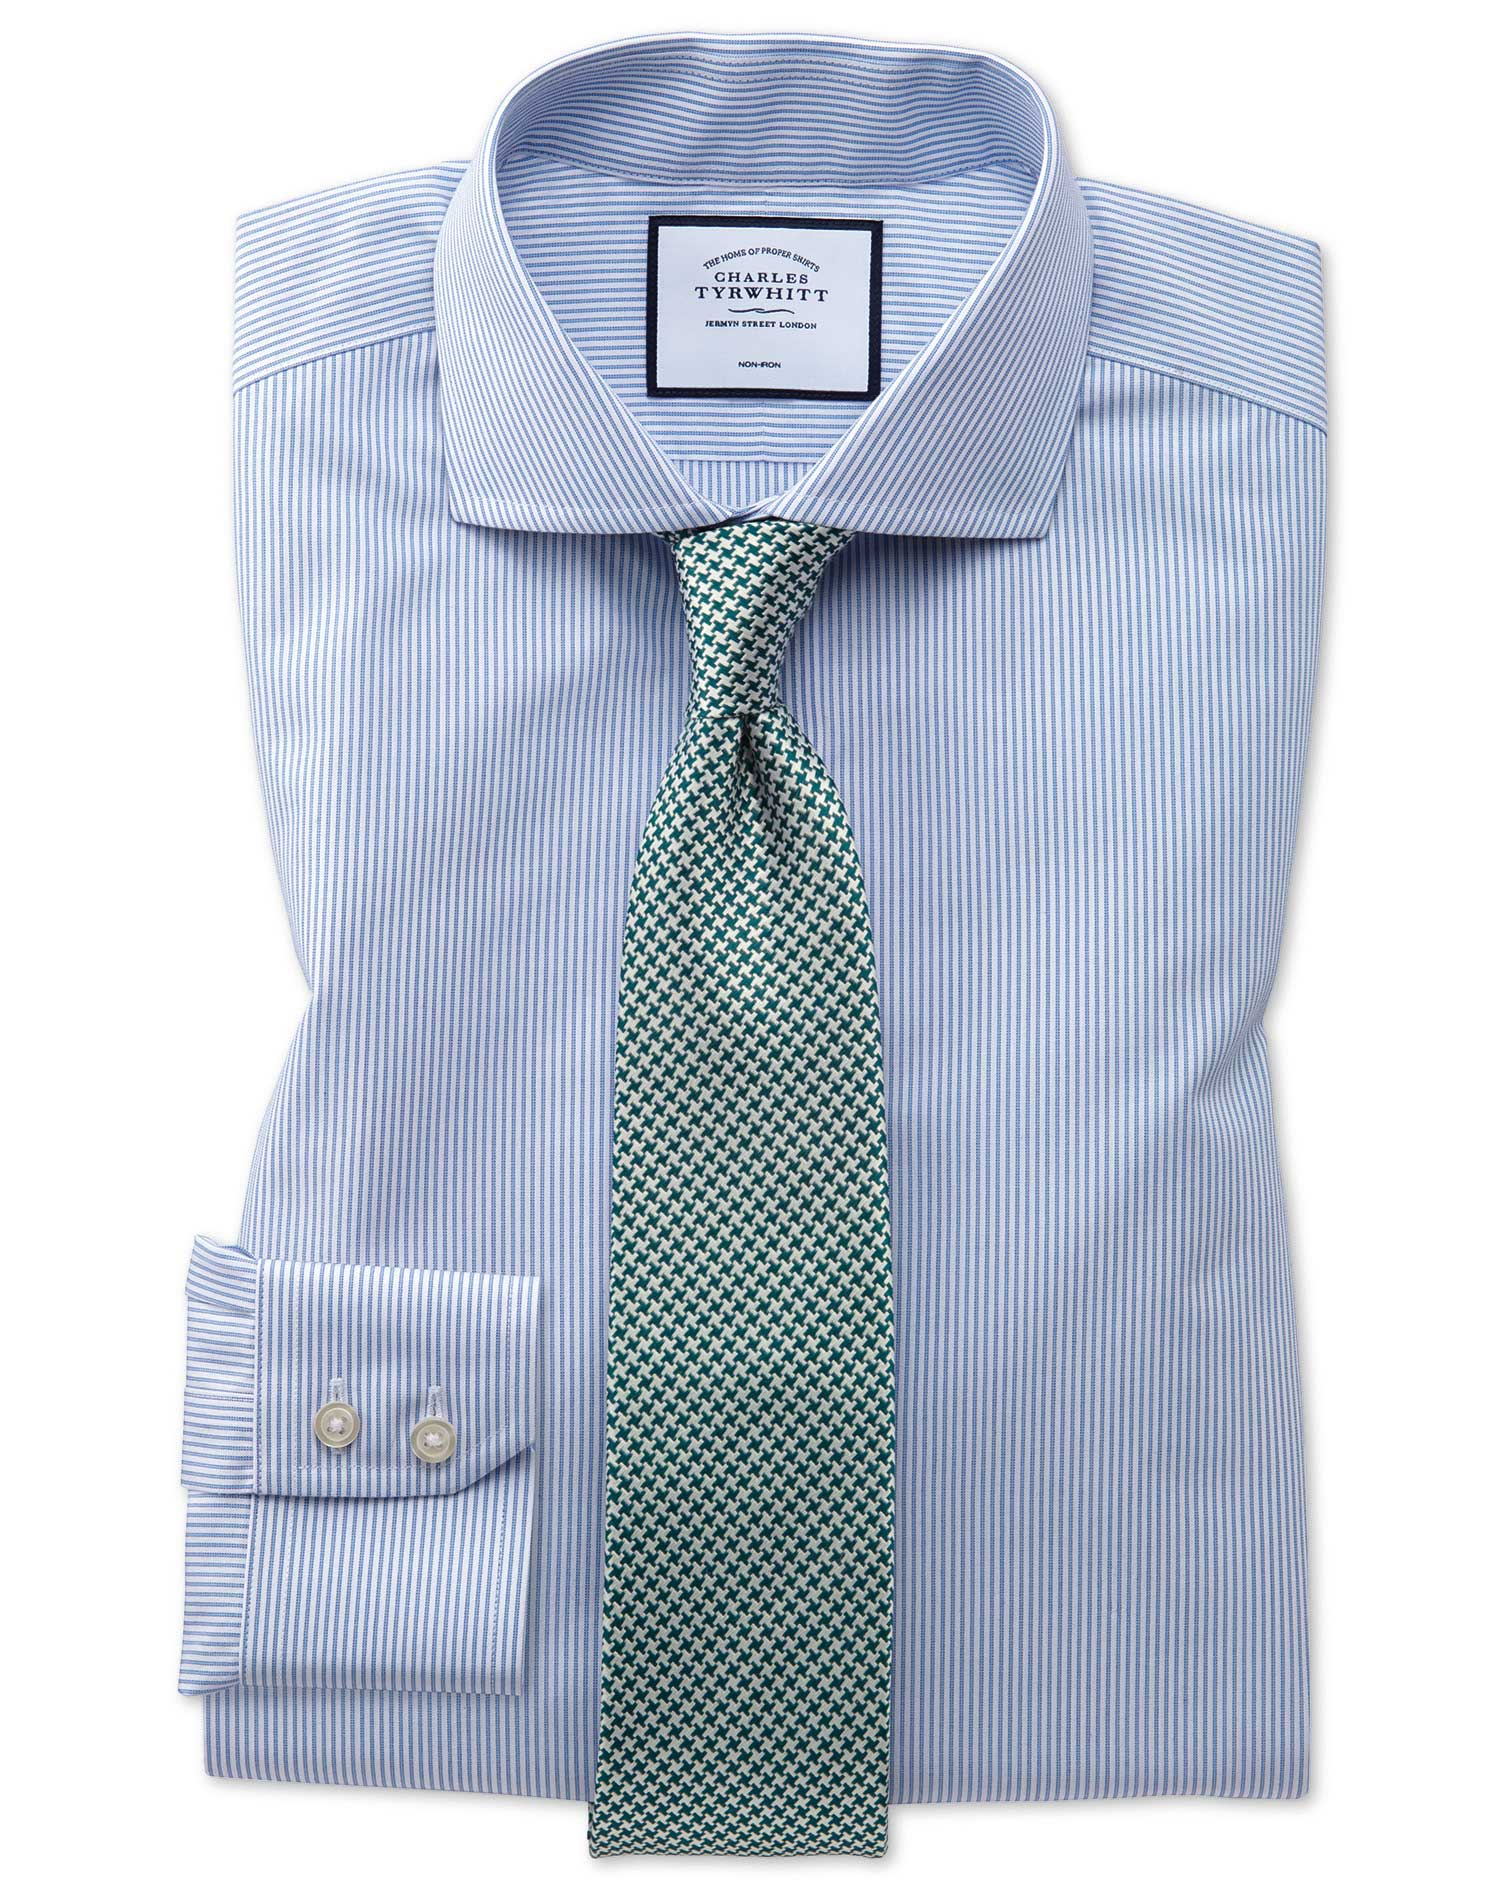 Extra Slim Fit Non-Iron Natural Cool Blue Stripe Cotton Formal Shirt Single Cuff Size 15.5/32 by Cha